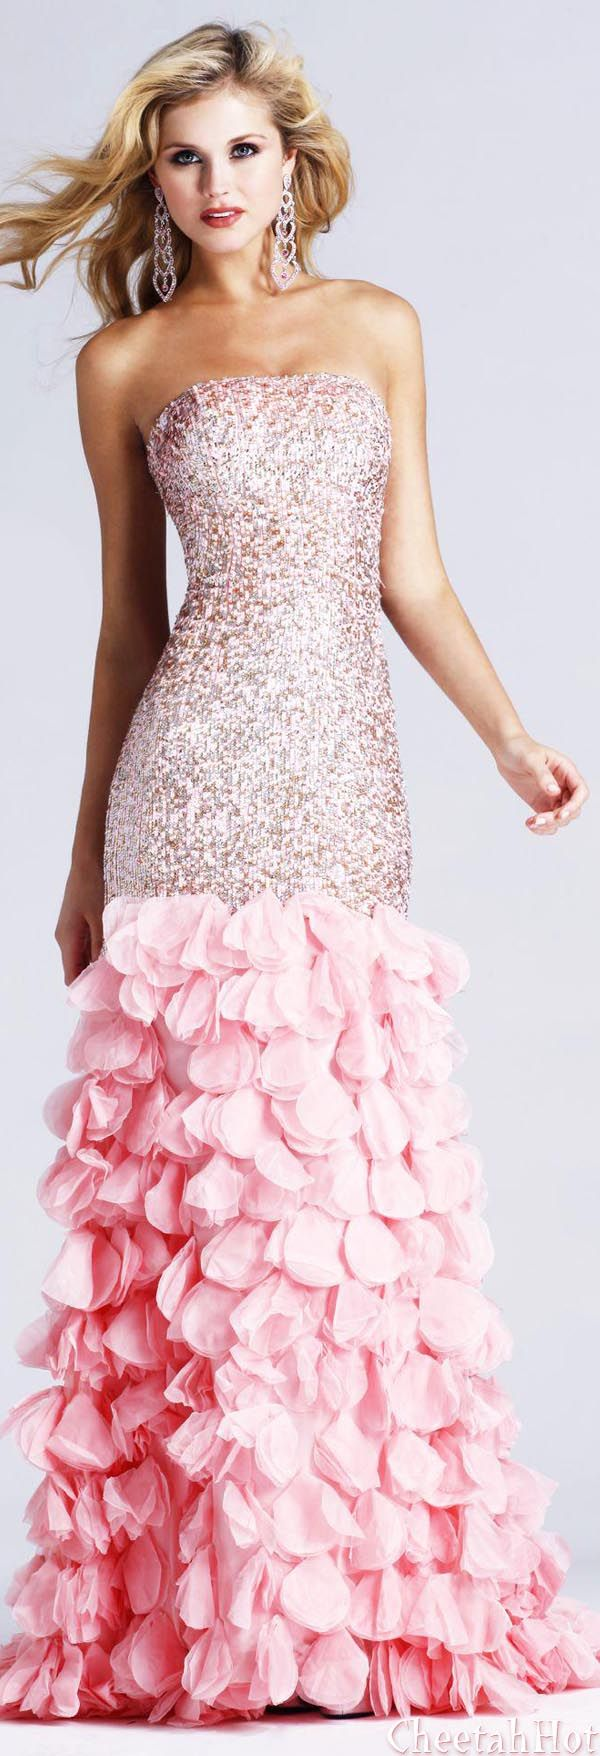 Prom Dresses Coppell TX